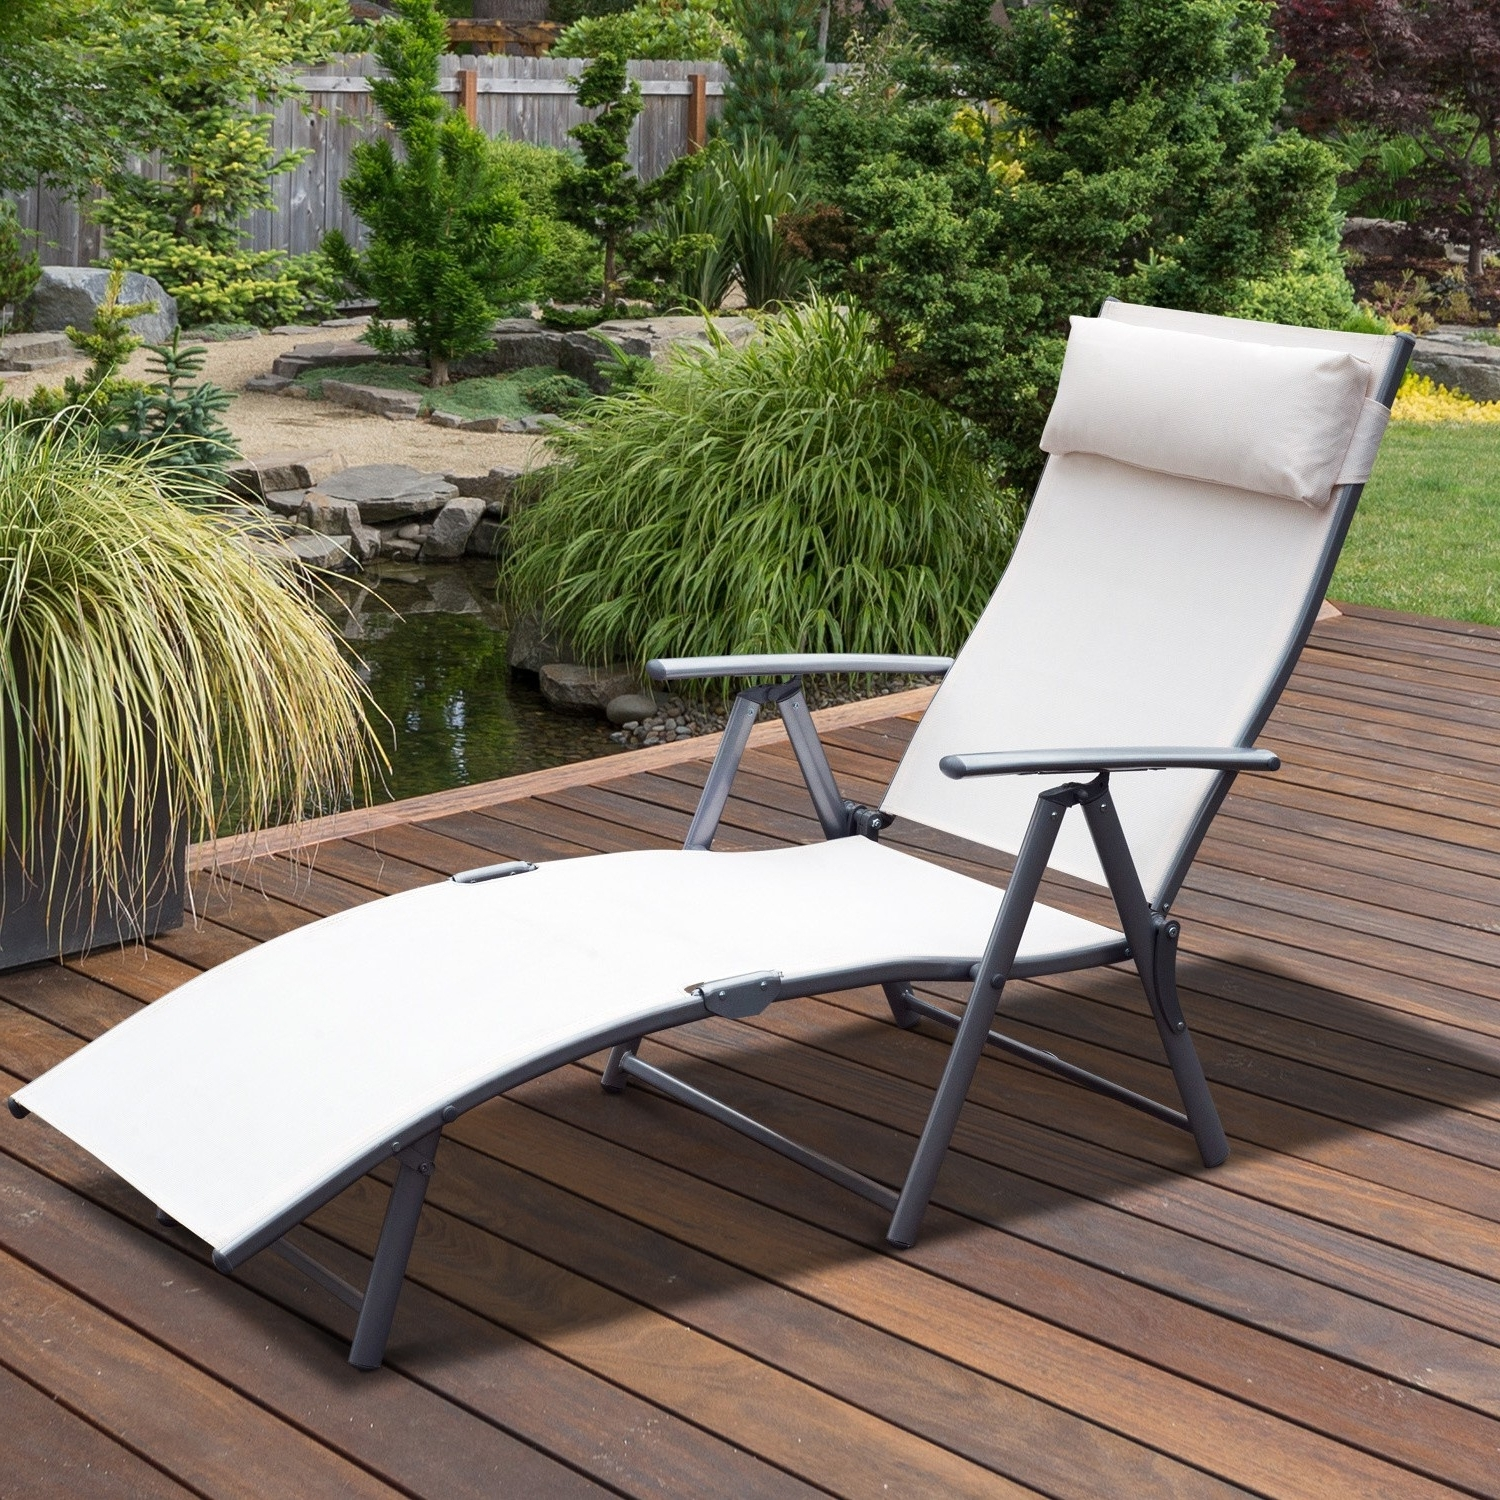 2017 Heavy Duty Chaise Lounge Chairs Throughout Lounge Chair : Chairs Patio Chairs For Large People Lounge Chairs (View 1 of 15)